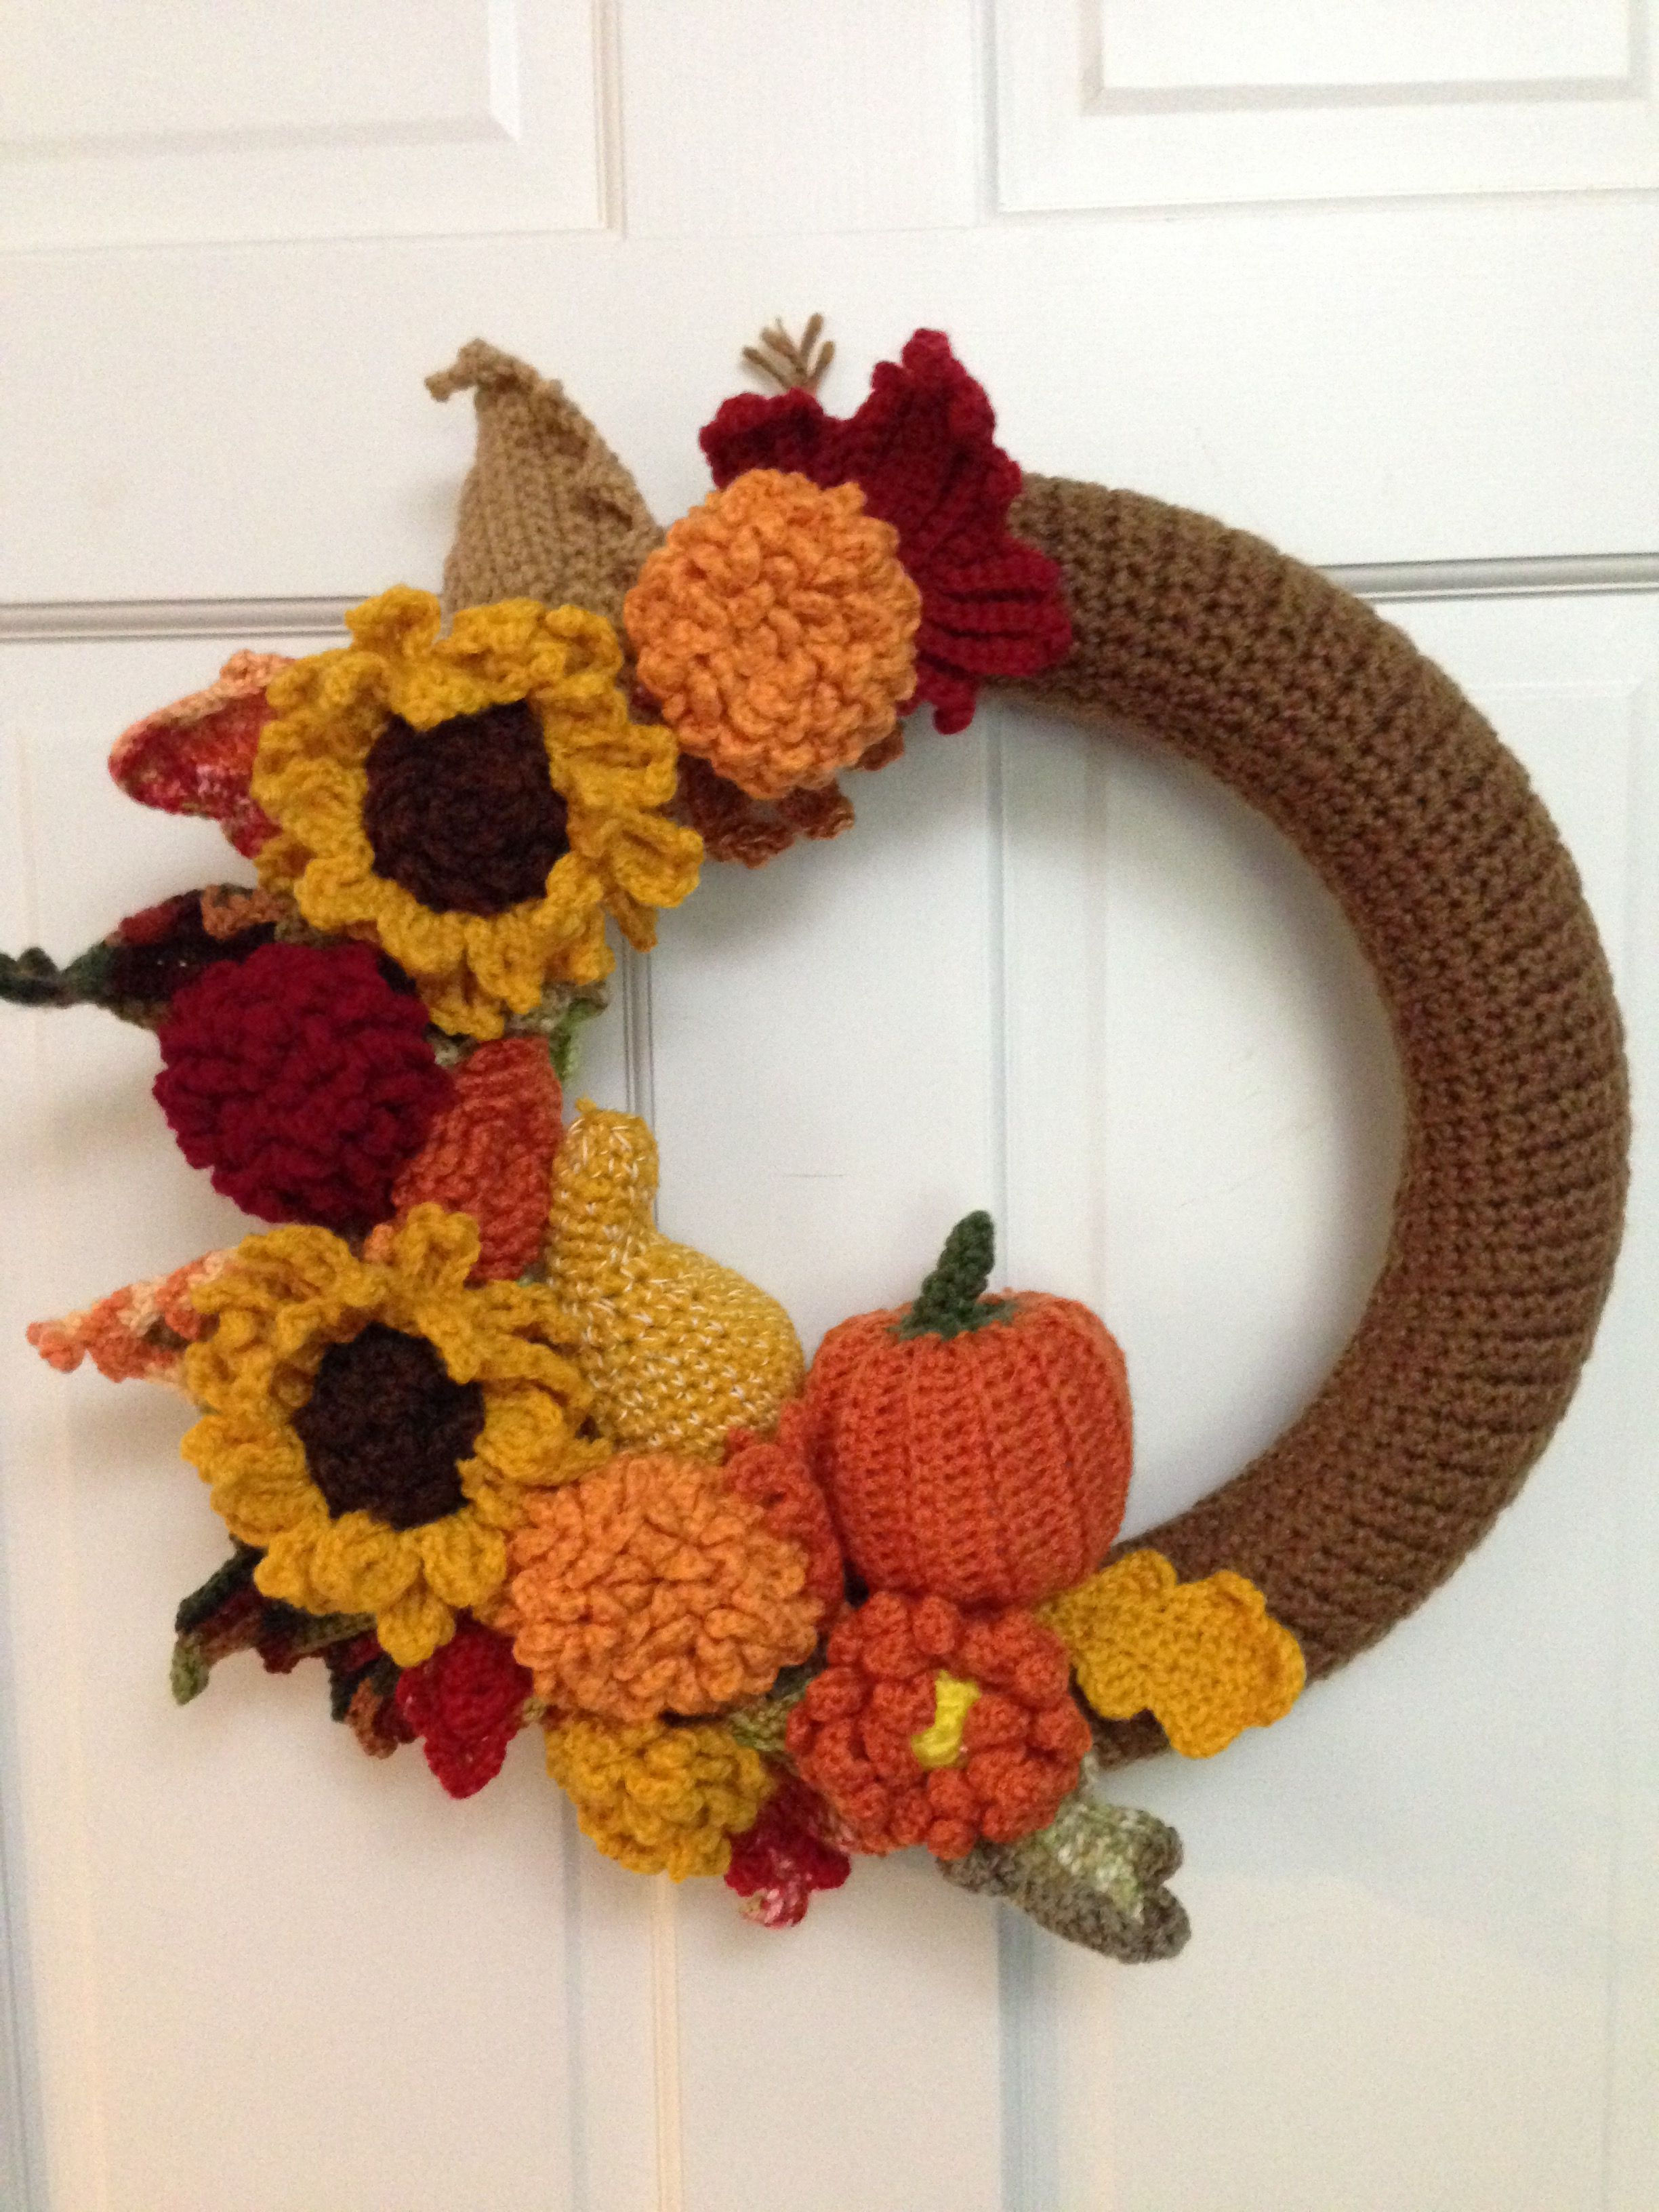 Fall wreath made from various crochet patterns